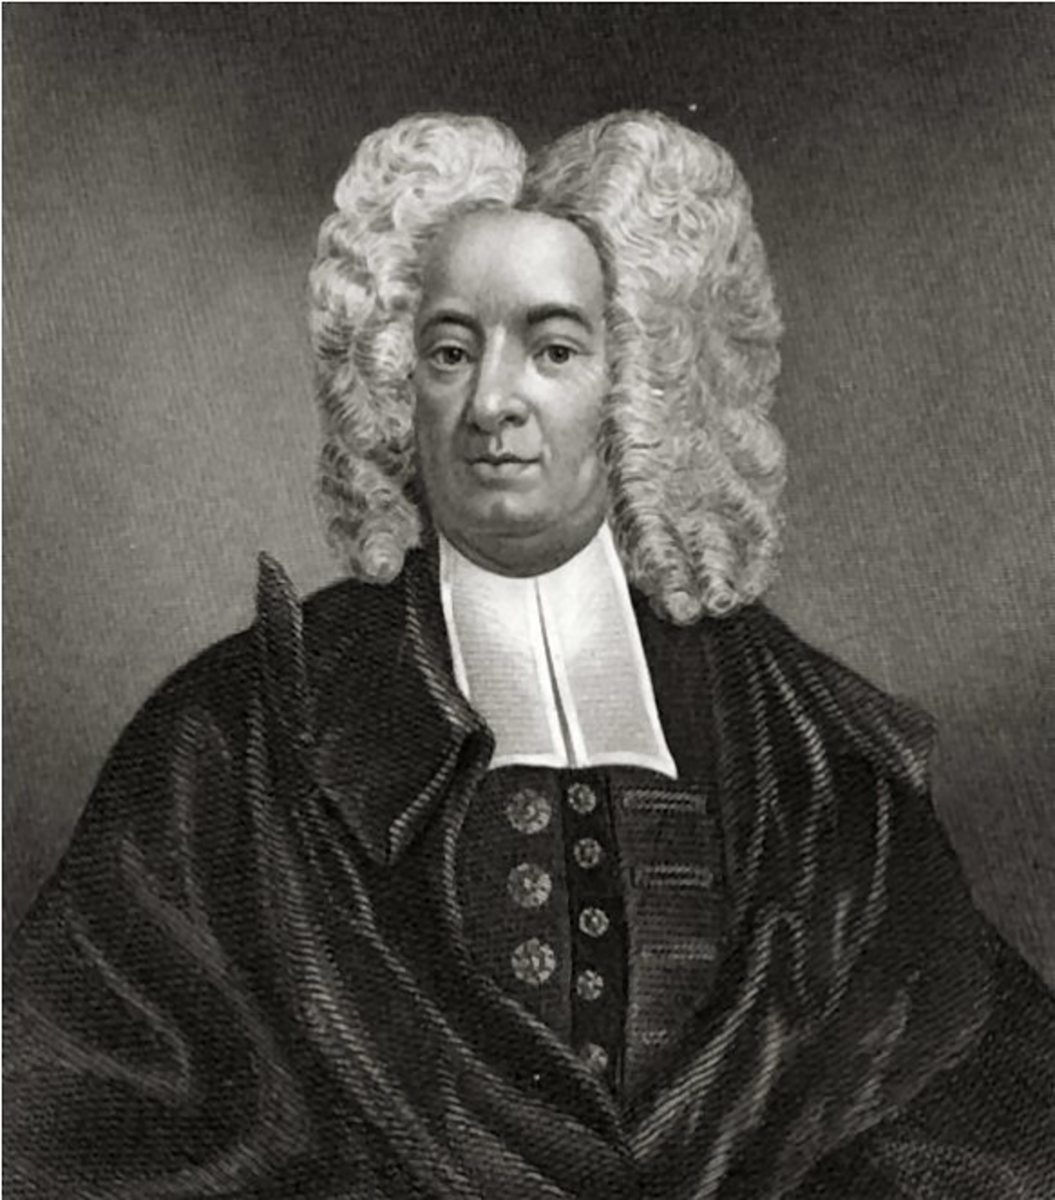 Cotton Mather—a Puritan minister, prolific author and pamphleteer